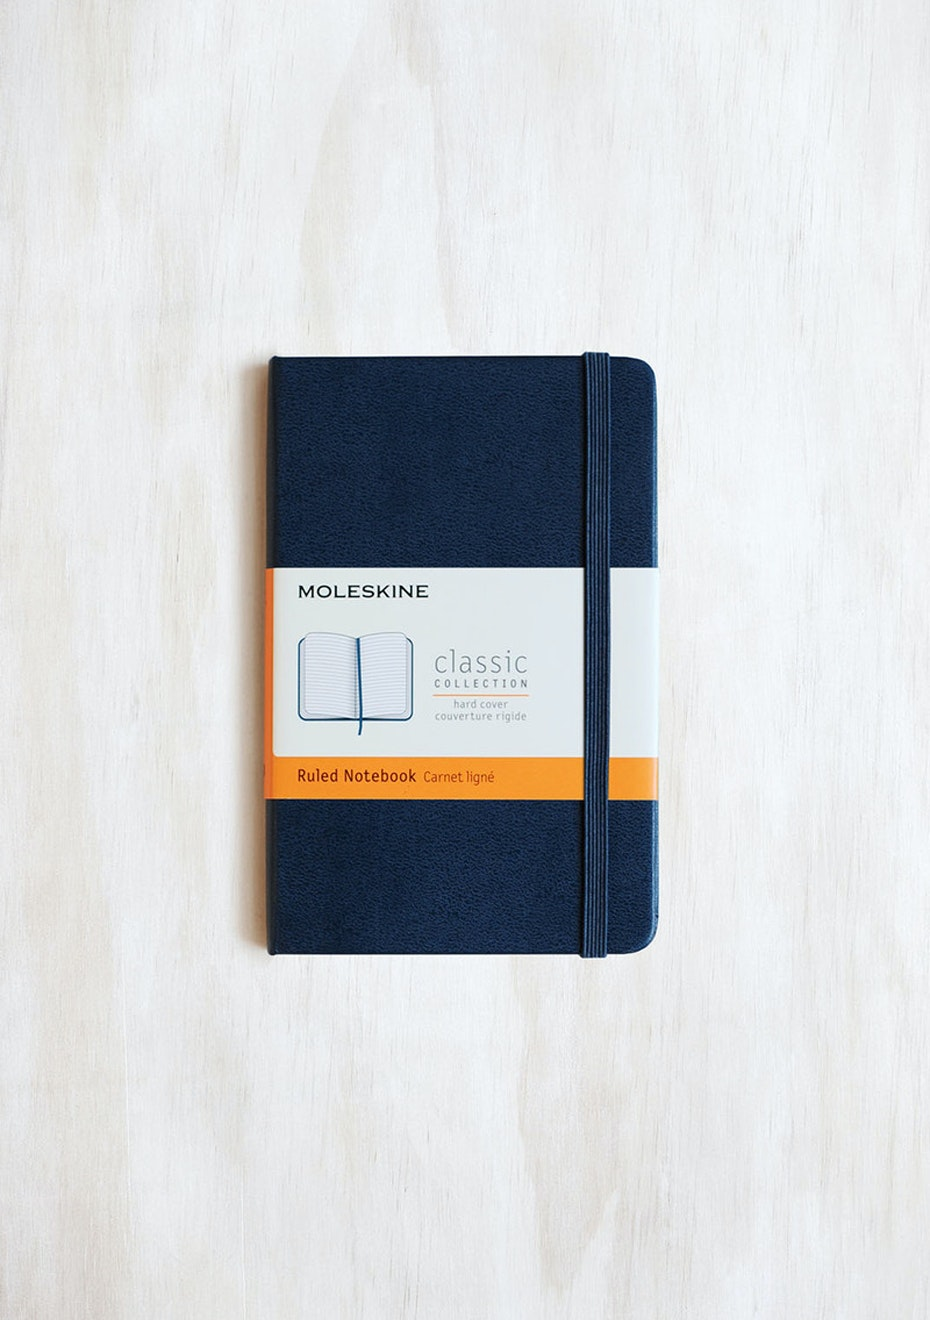 Moleskine - Classic Hard Cover Notebook - Ruled - Pocket - Sapphire Blue